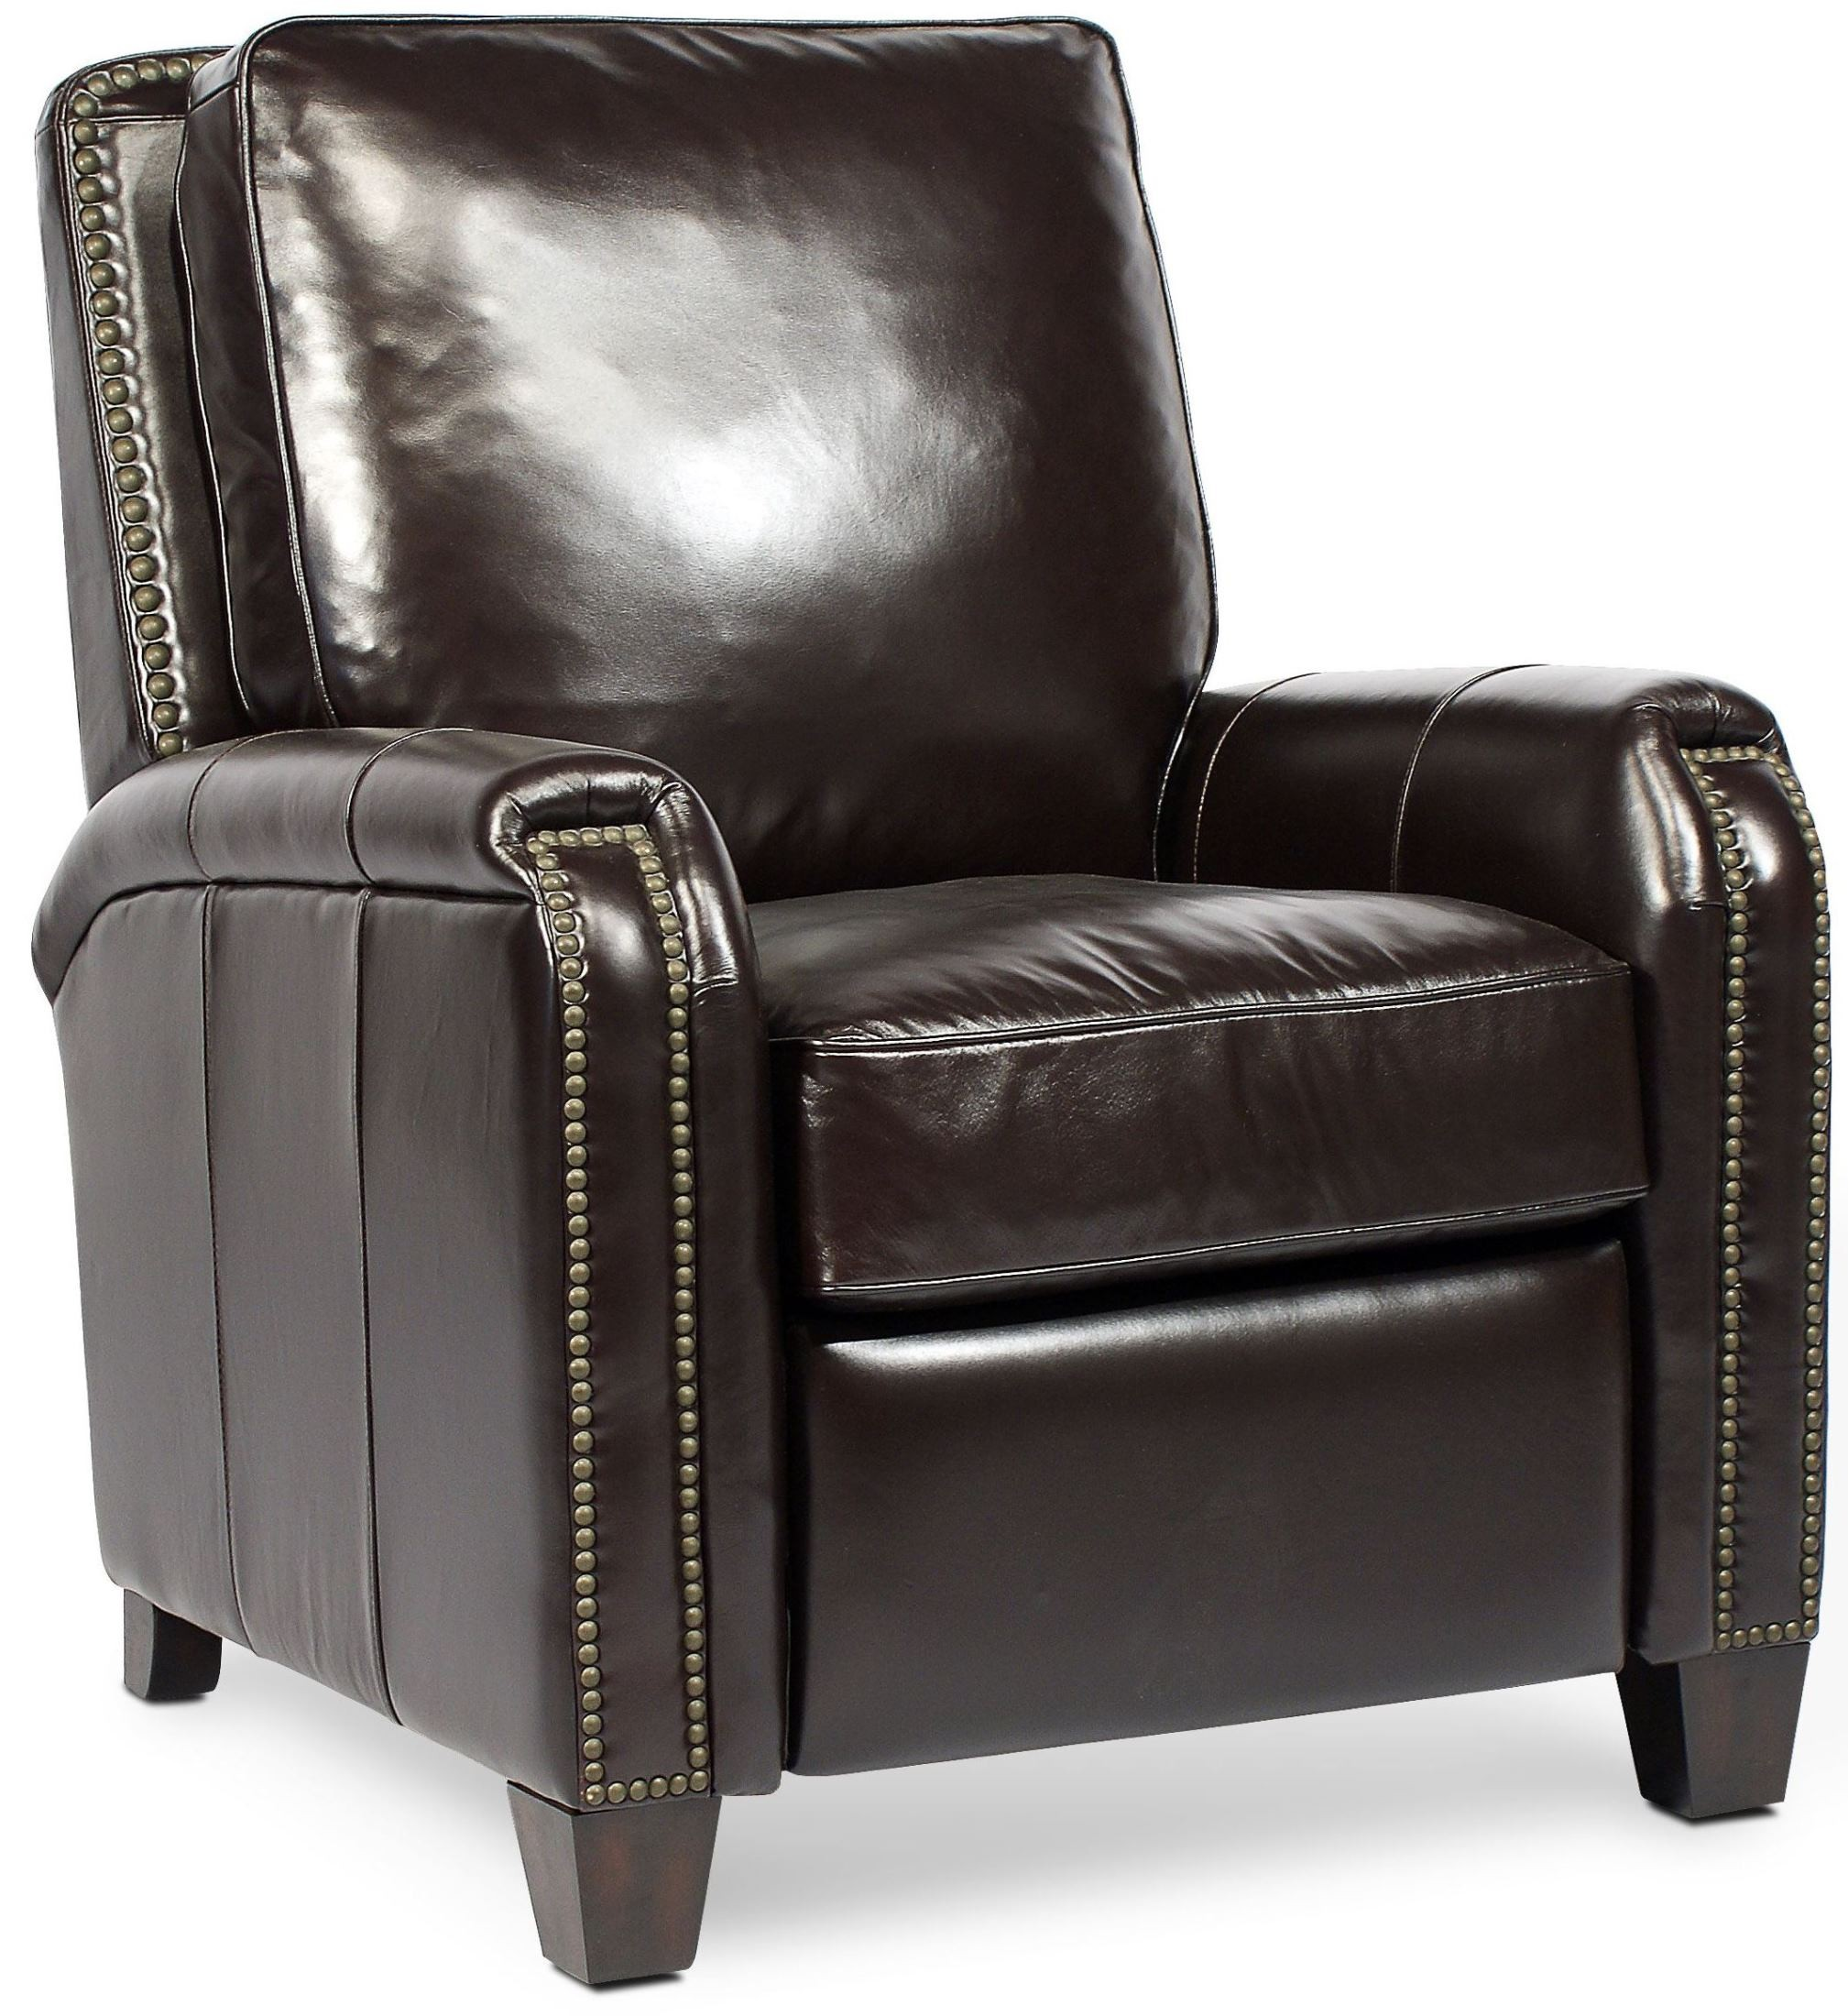 Beaumont madrid espresso recliner from palatial furniture for Q furniture beaumont